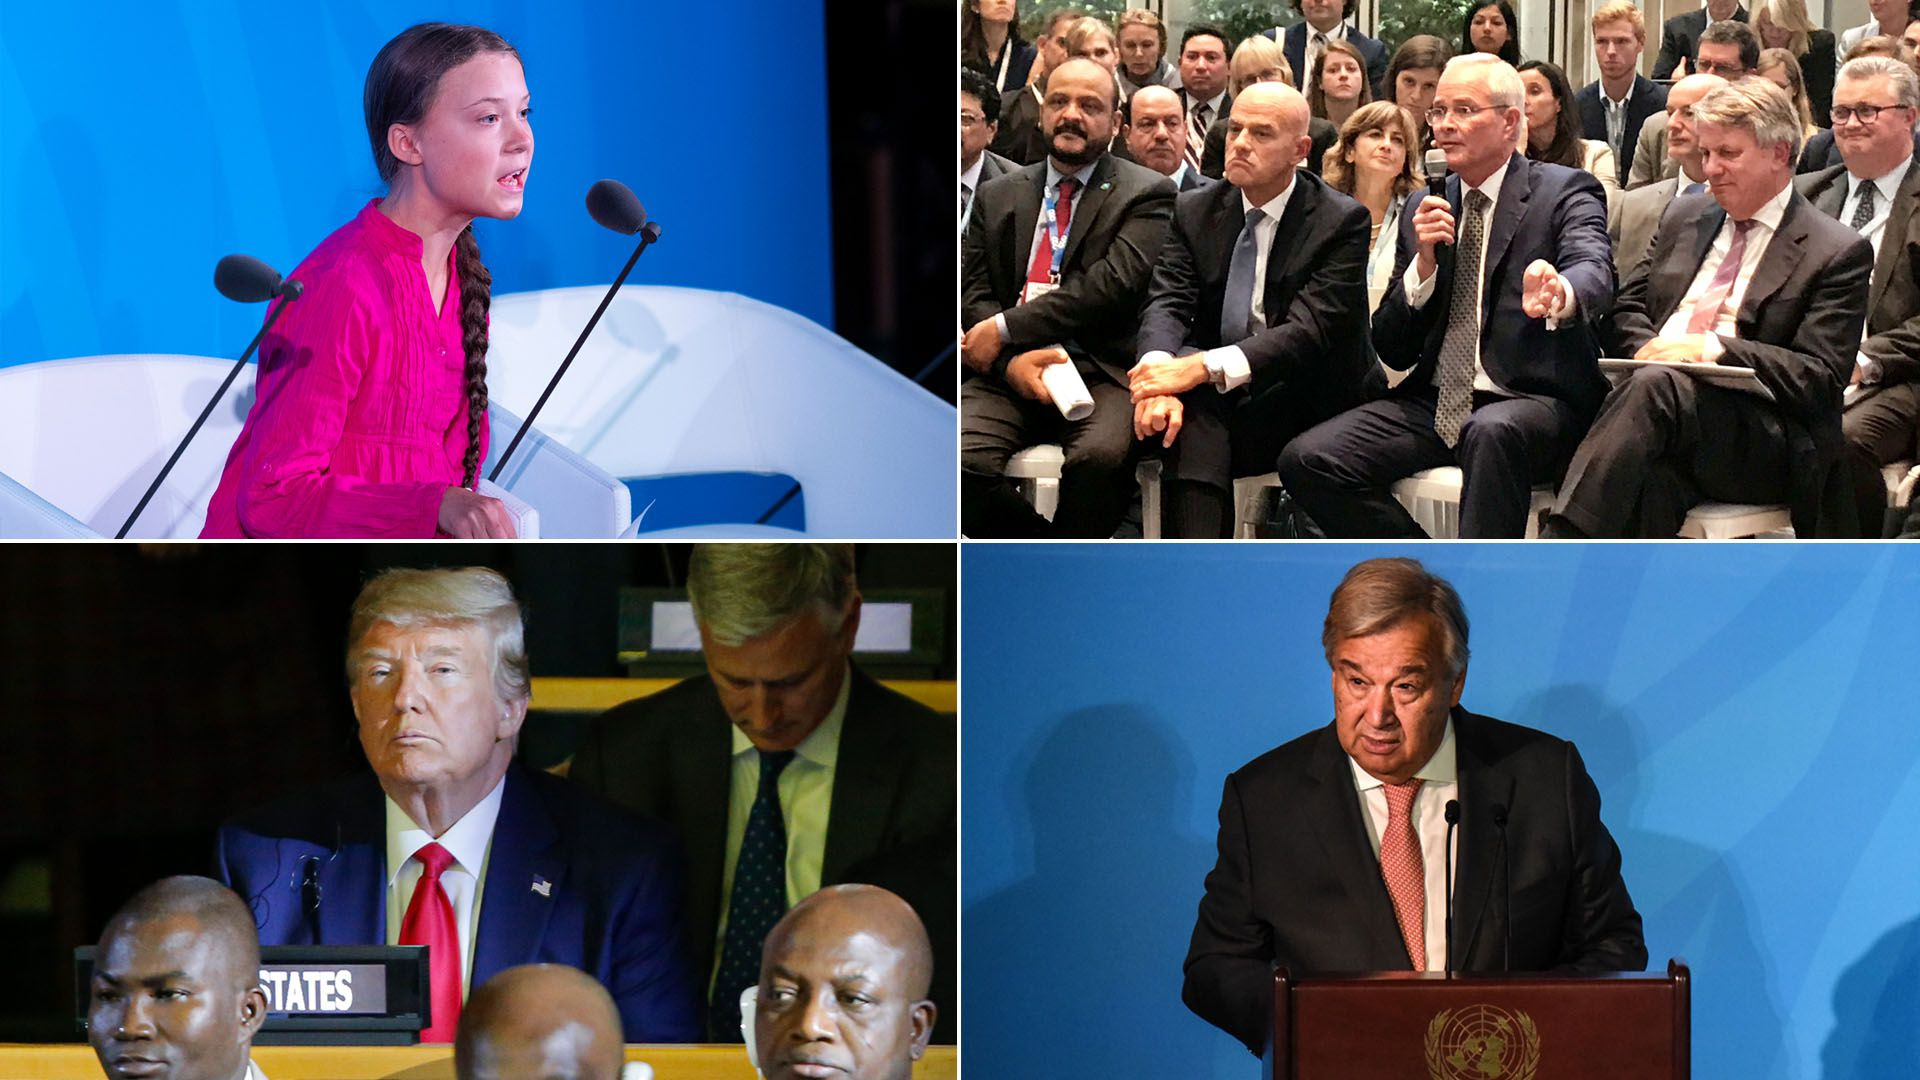 Photo montage of the UN climate summit